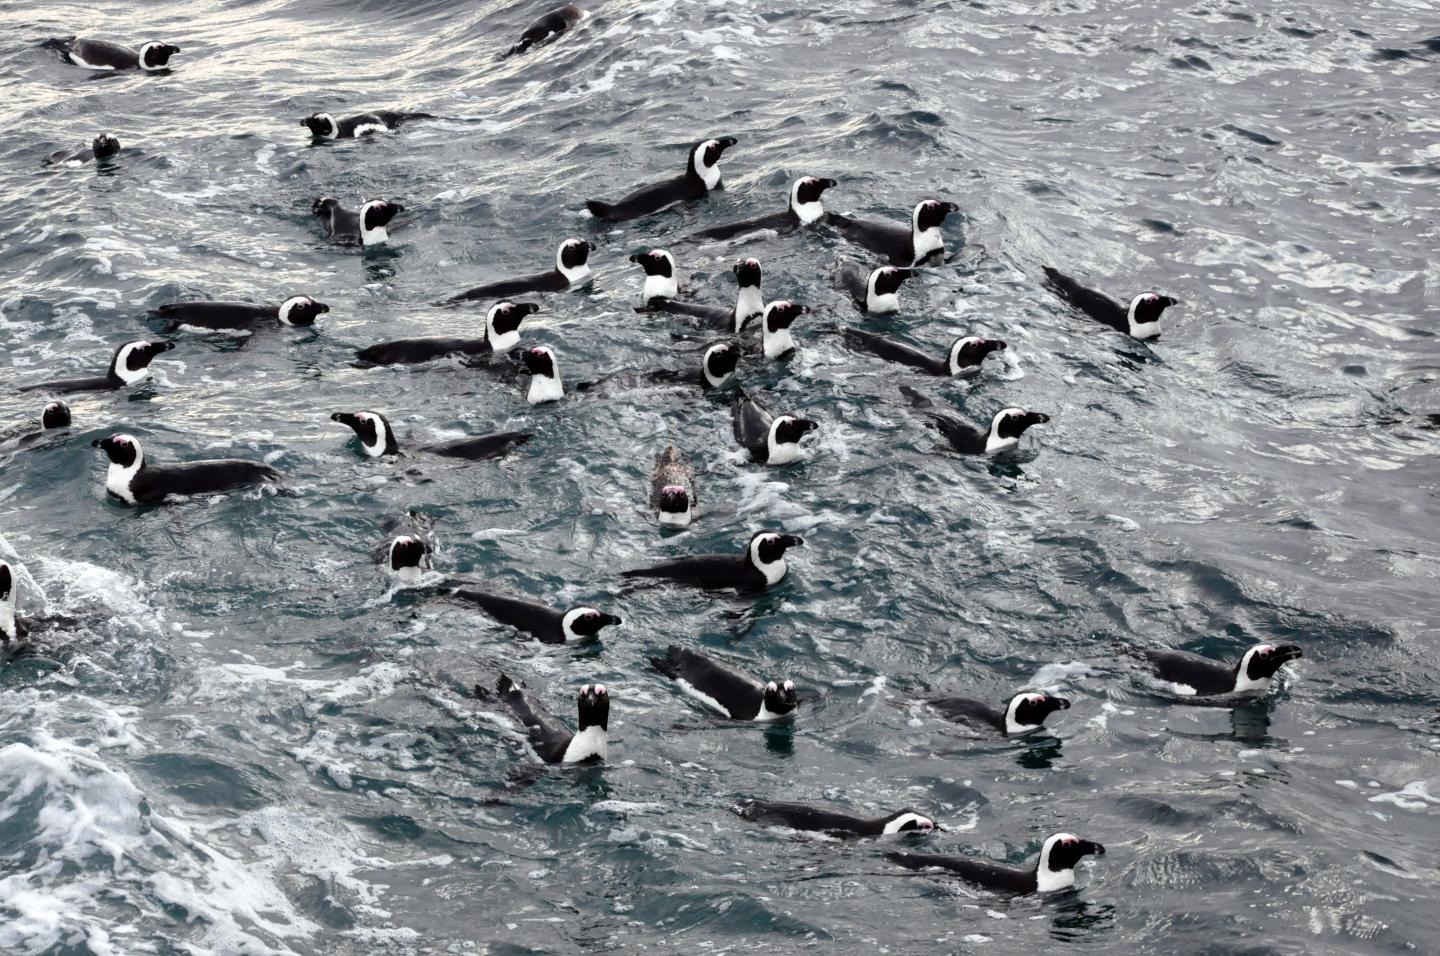 African Penguins at Sea